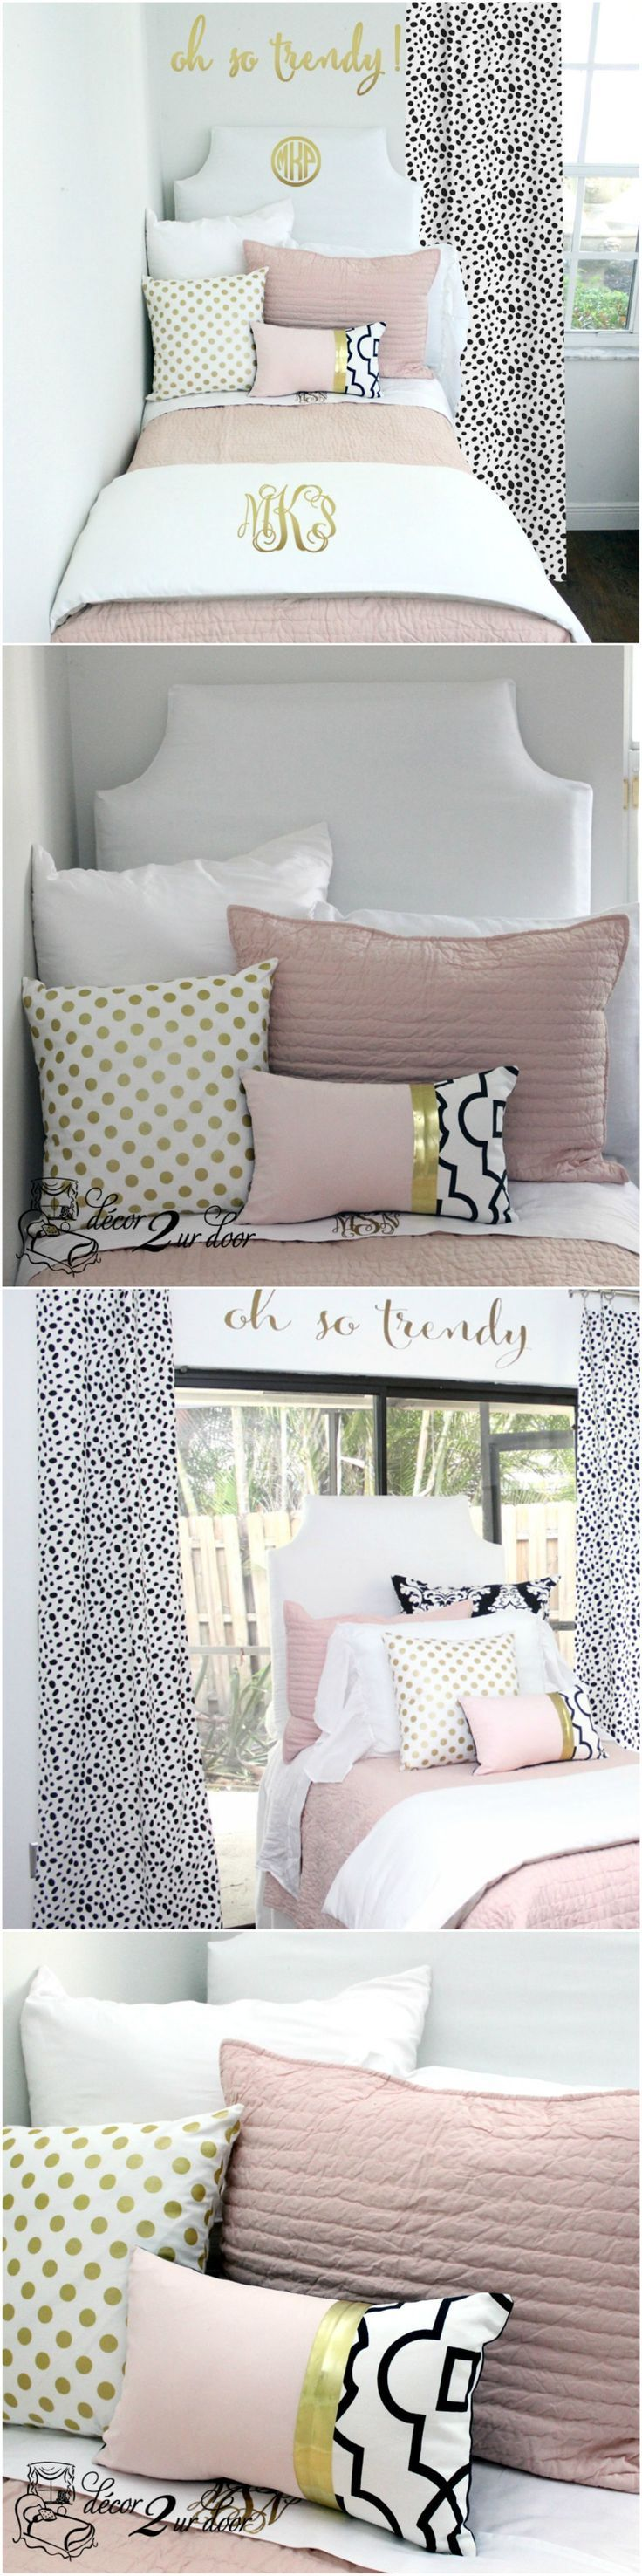 Decorating a dorm room? Check out Décor 2 Ur Door for the latest dorm room…